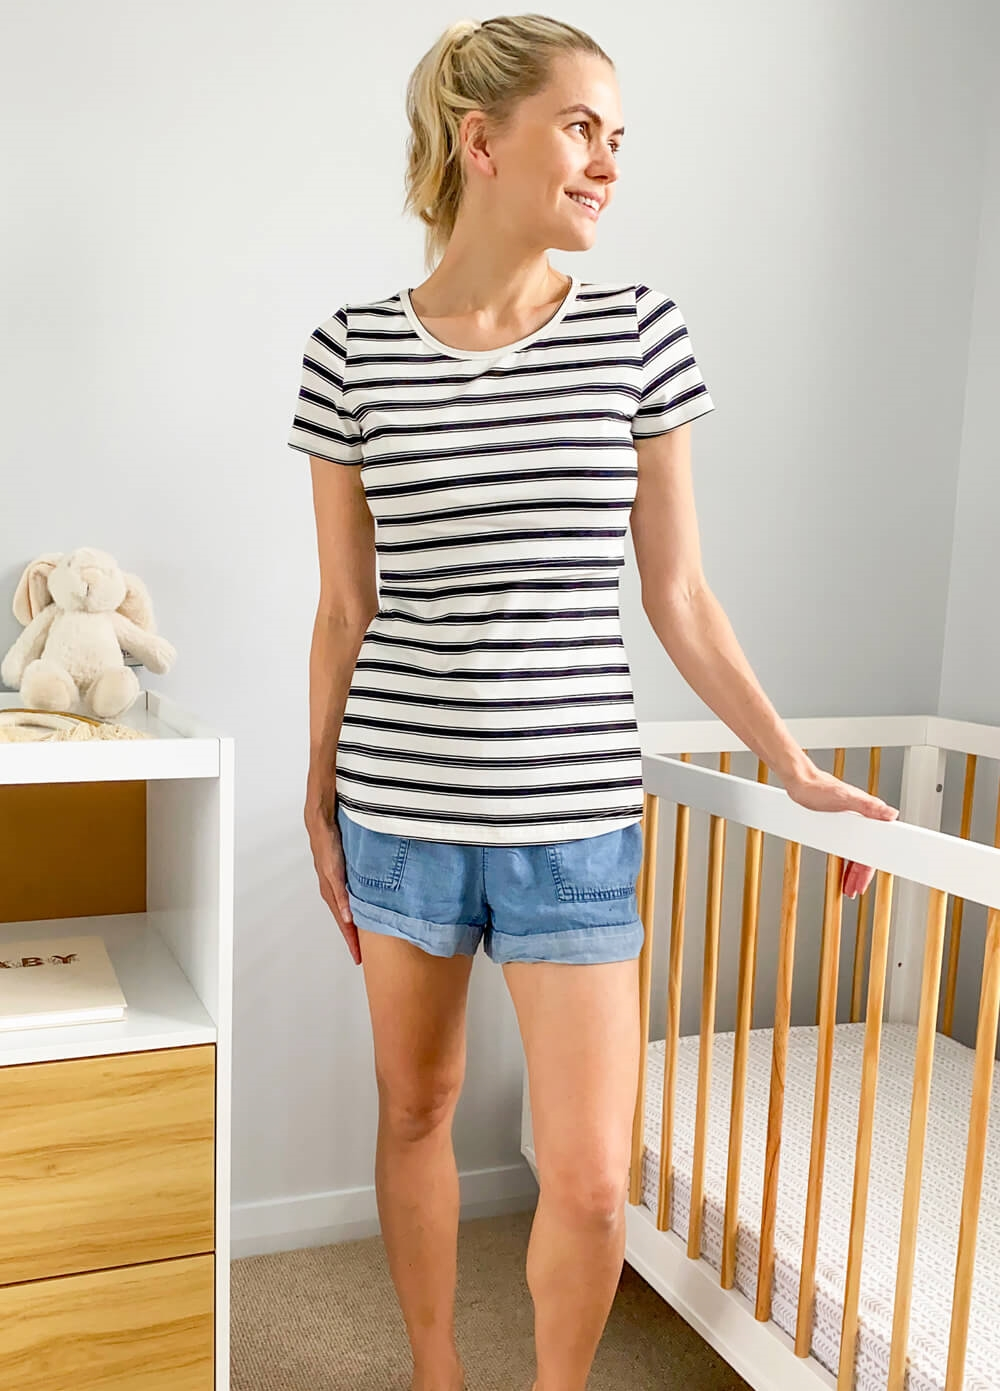 Lait & Co - Trinite Nursing Tee in White/Black Stripes | Queen Bee